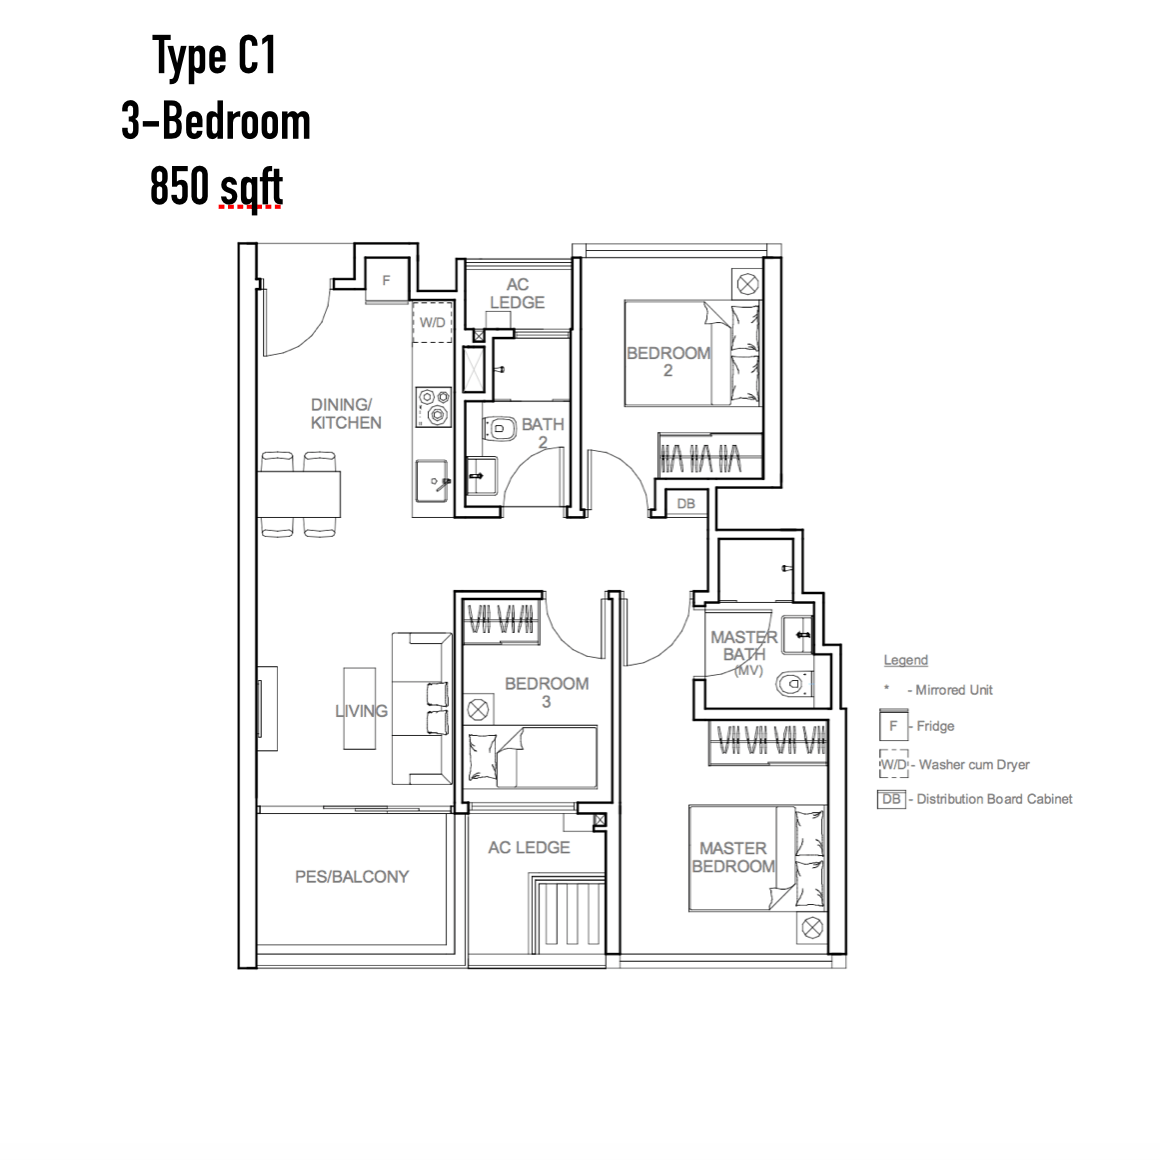 New Launch - Sophia Hills - Floor Plan Type C1 3-Bedroom